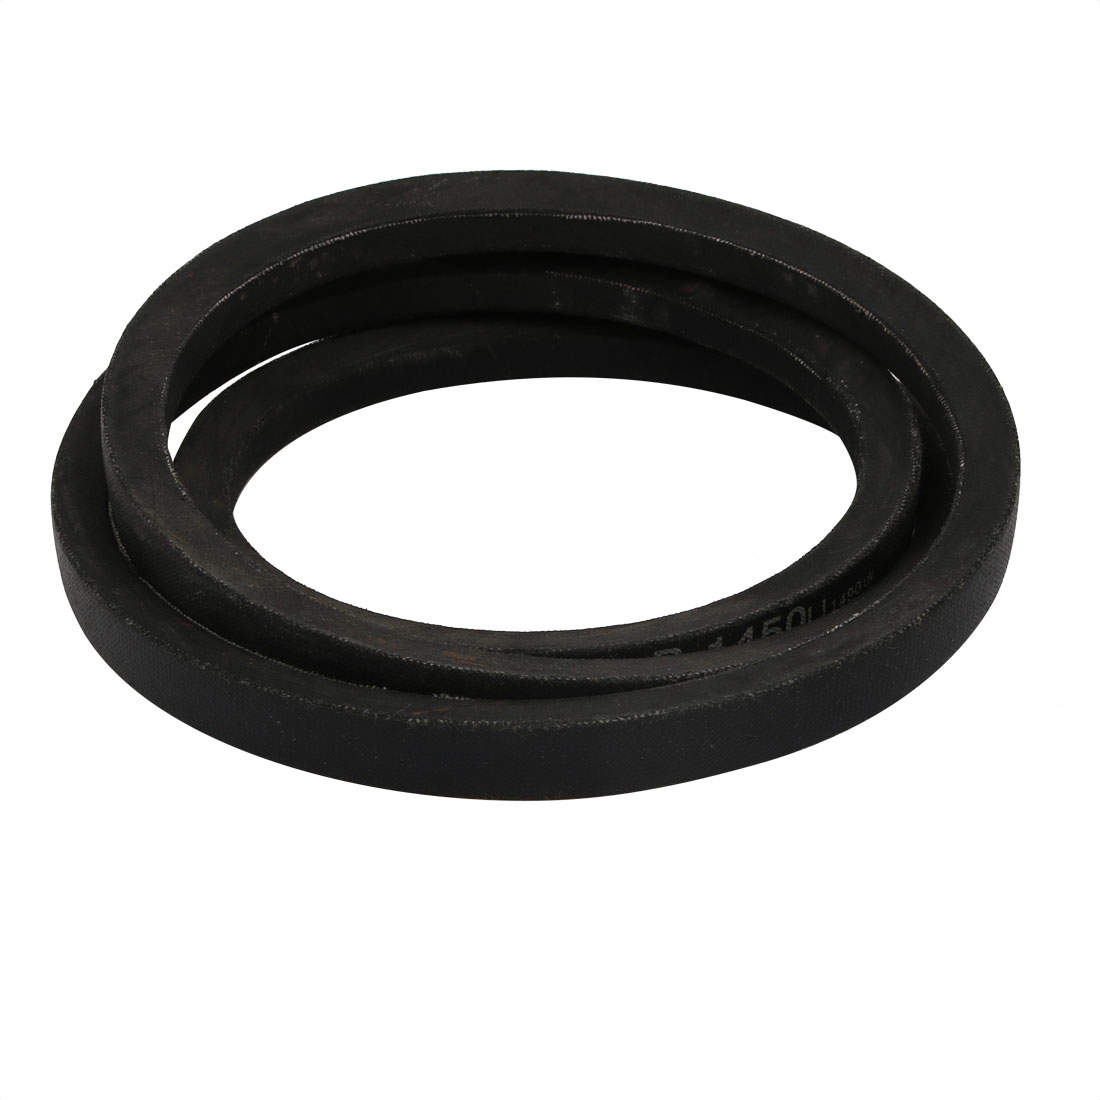 B1450 17mm Width 11mm Thickness Rubber High Strength Transmission Drive V-Belt